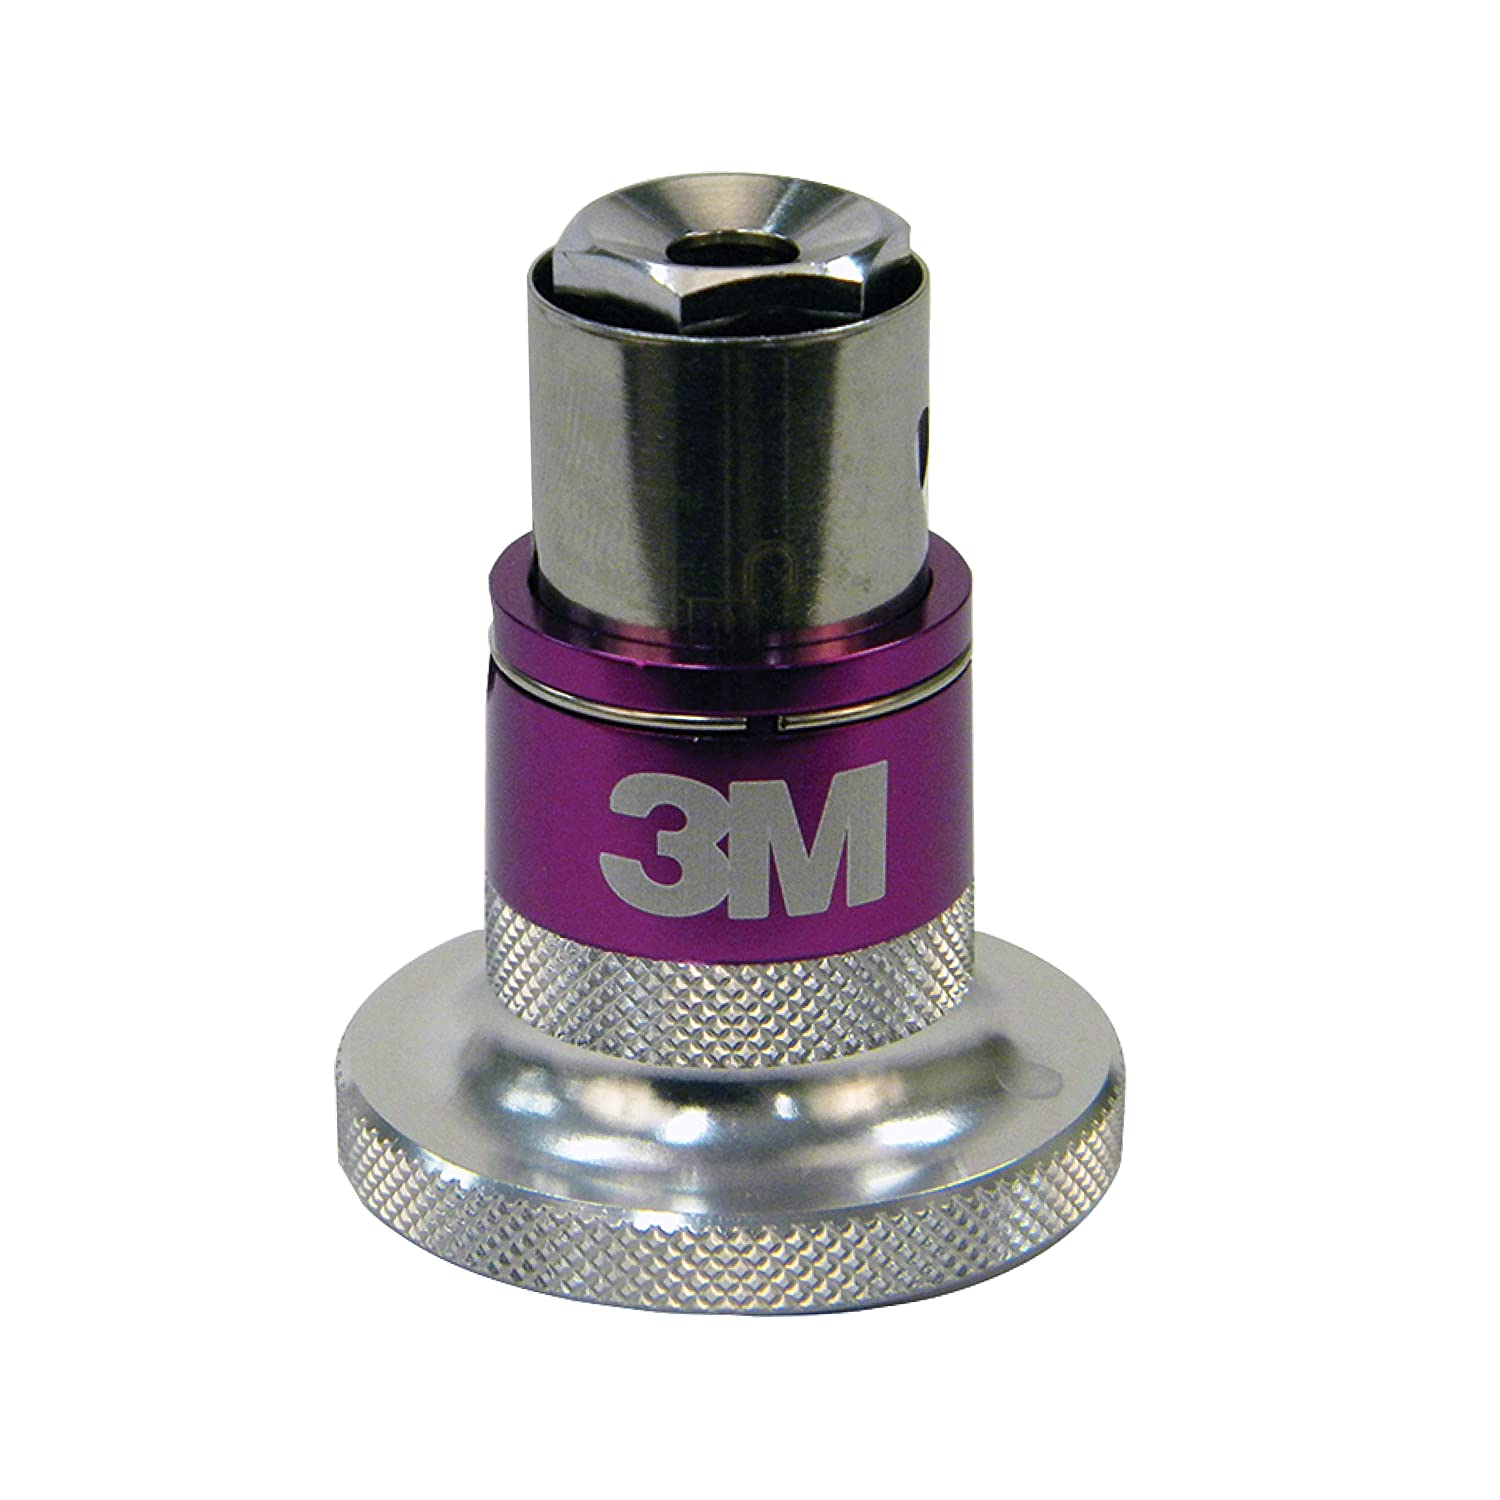 3M Perfect-It Quick Connect Adapter (05752) – For 3M Compounding and Polishing Pads – 5/8-inch thread